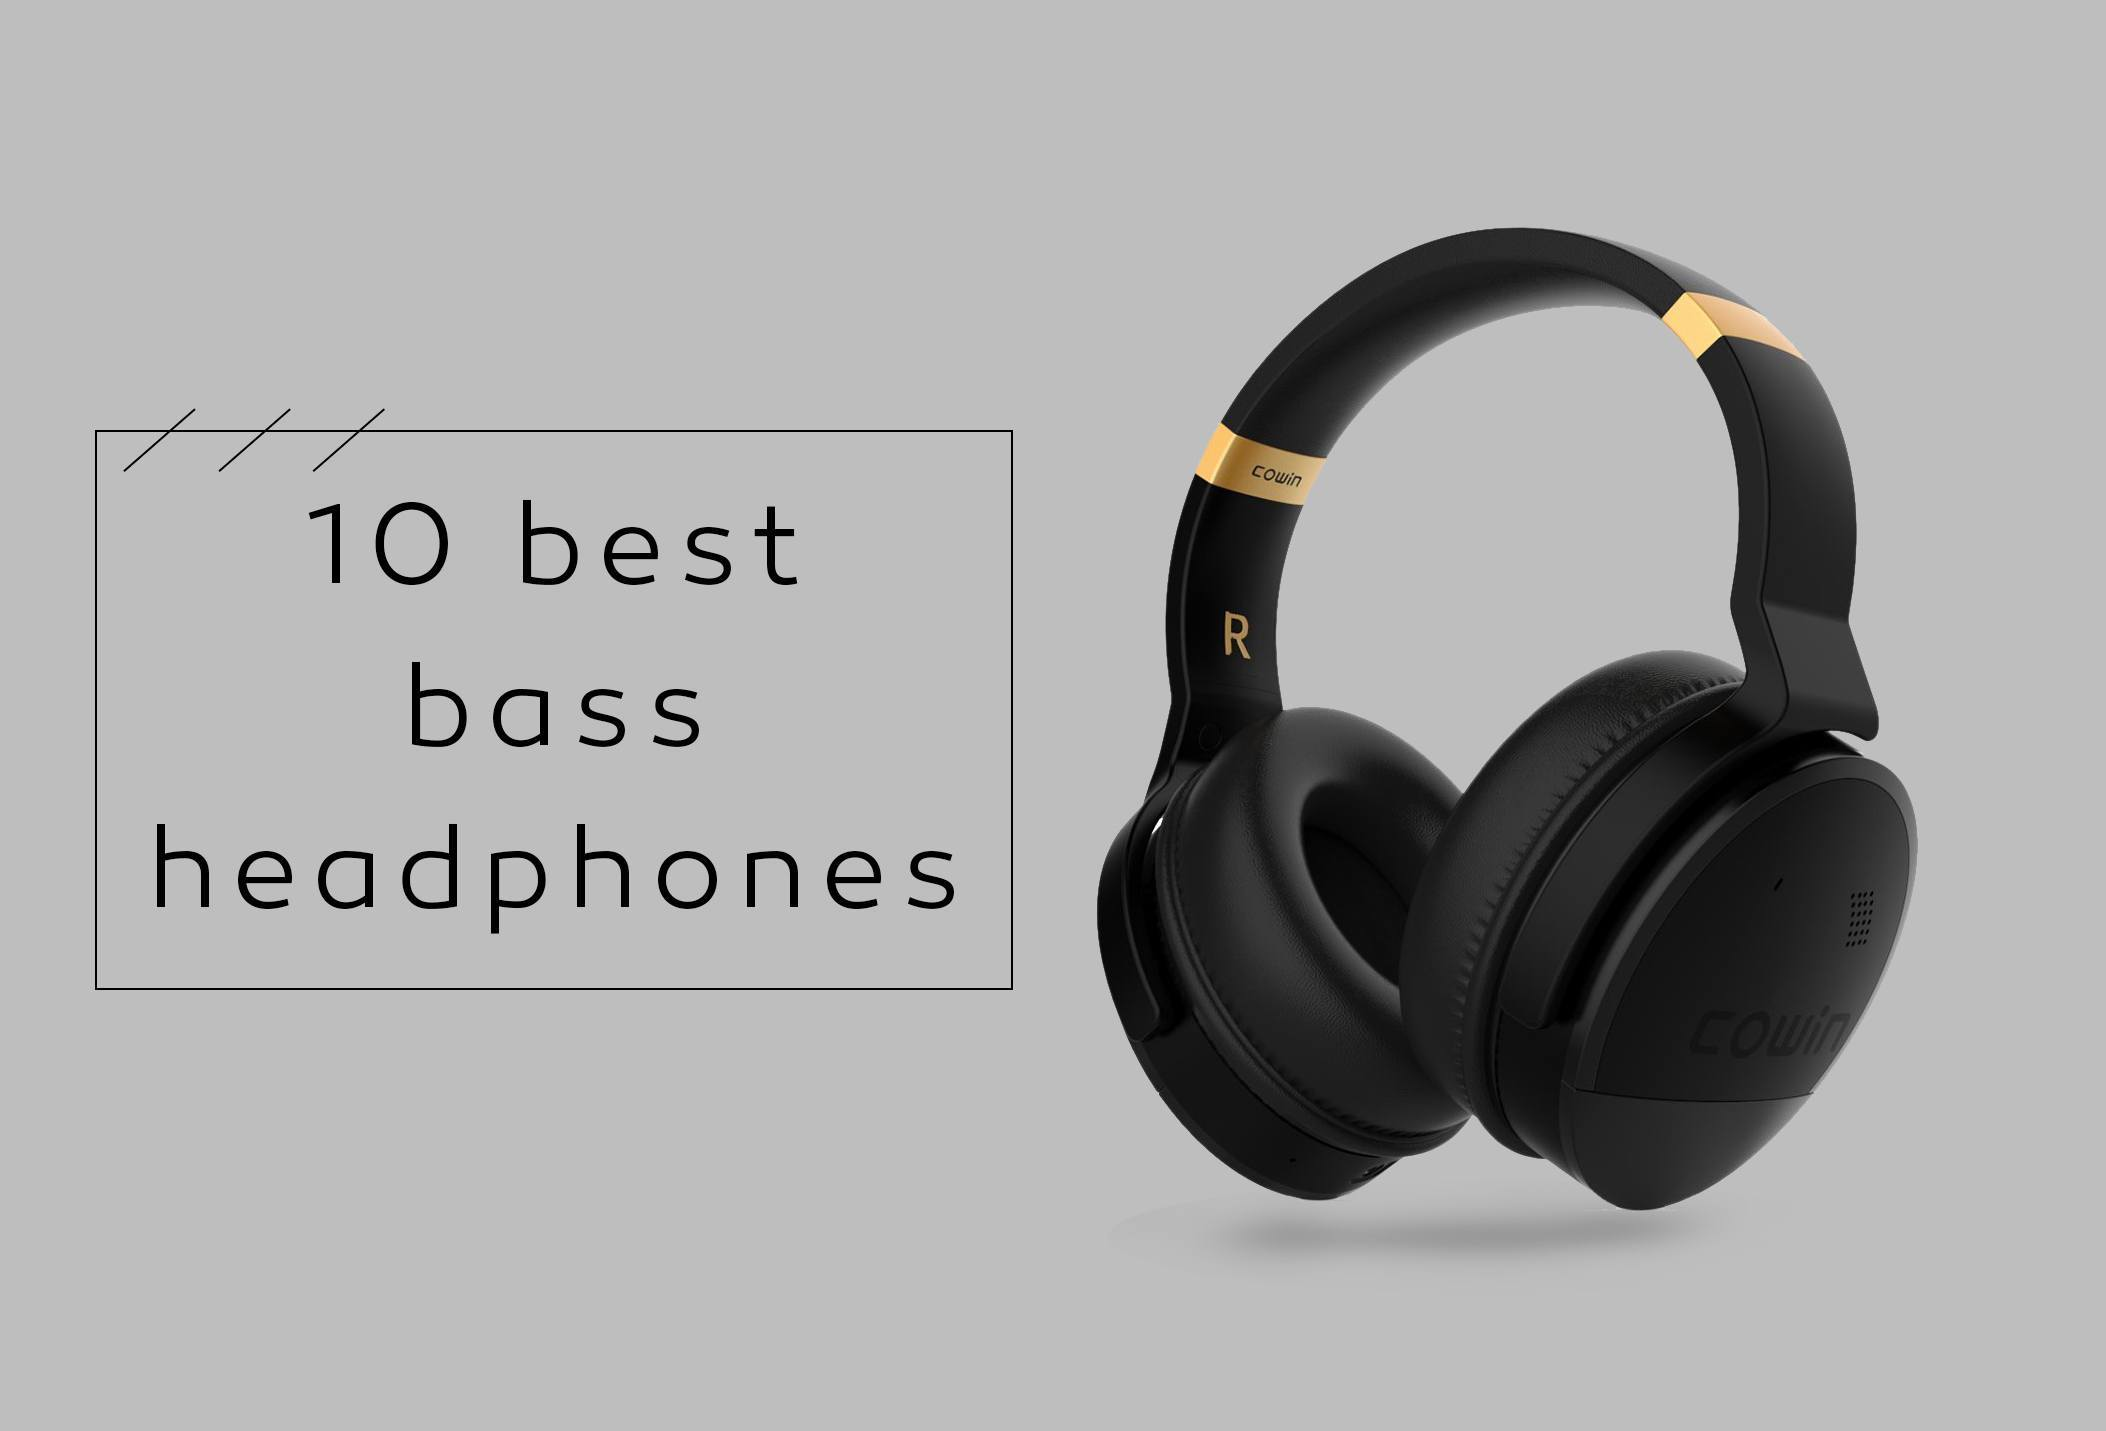 10 best bass headphones in 2018